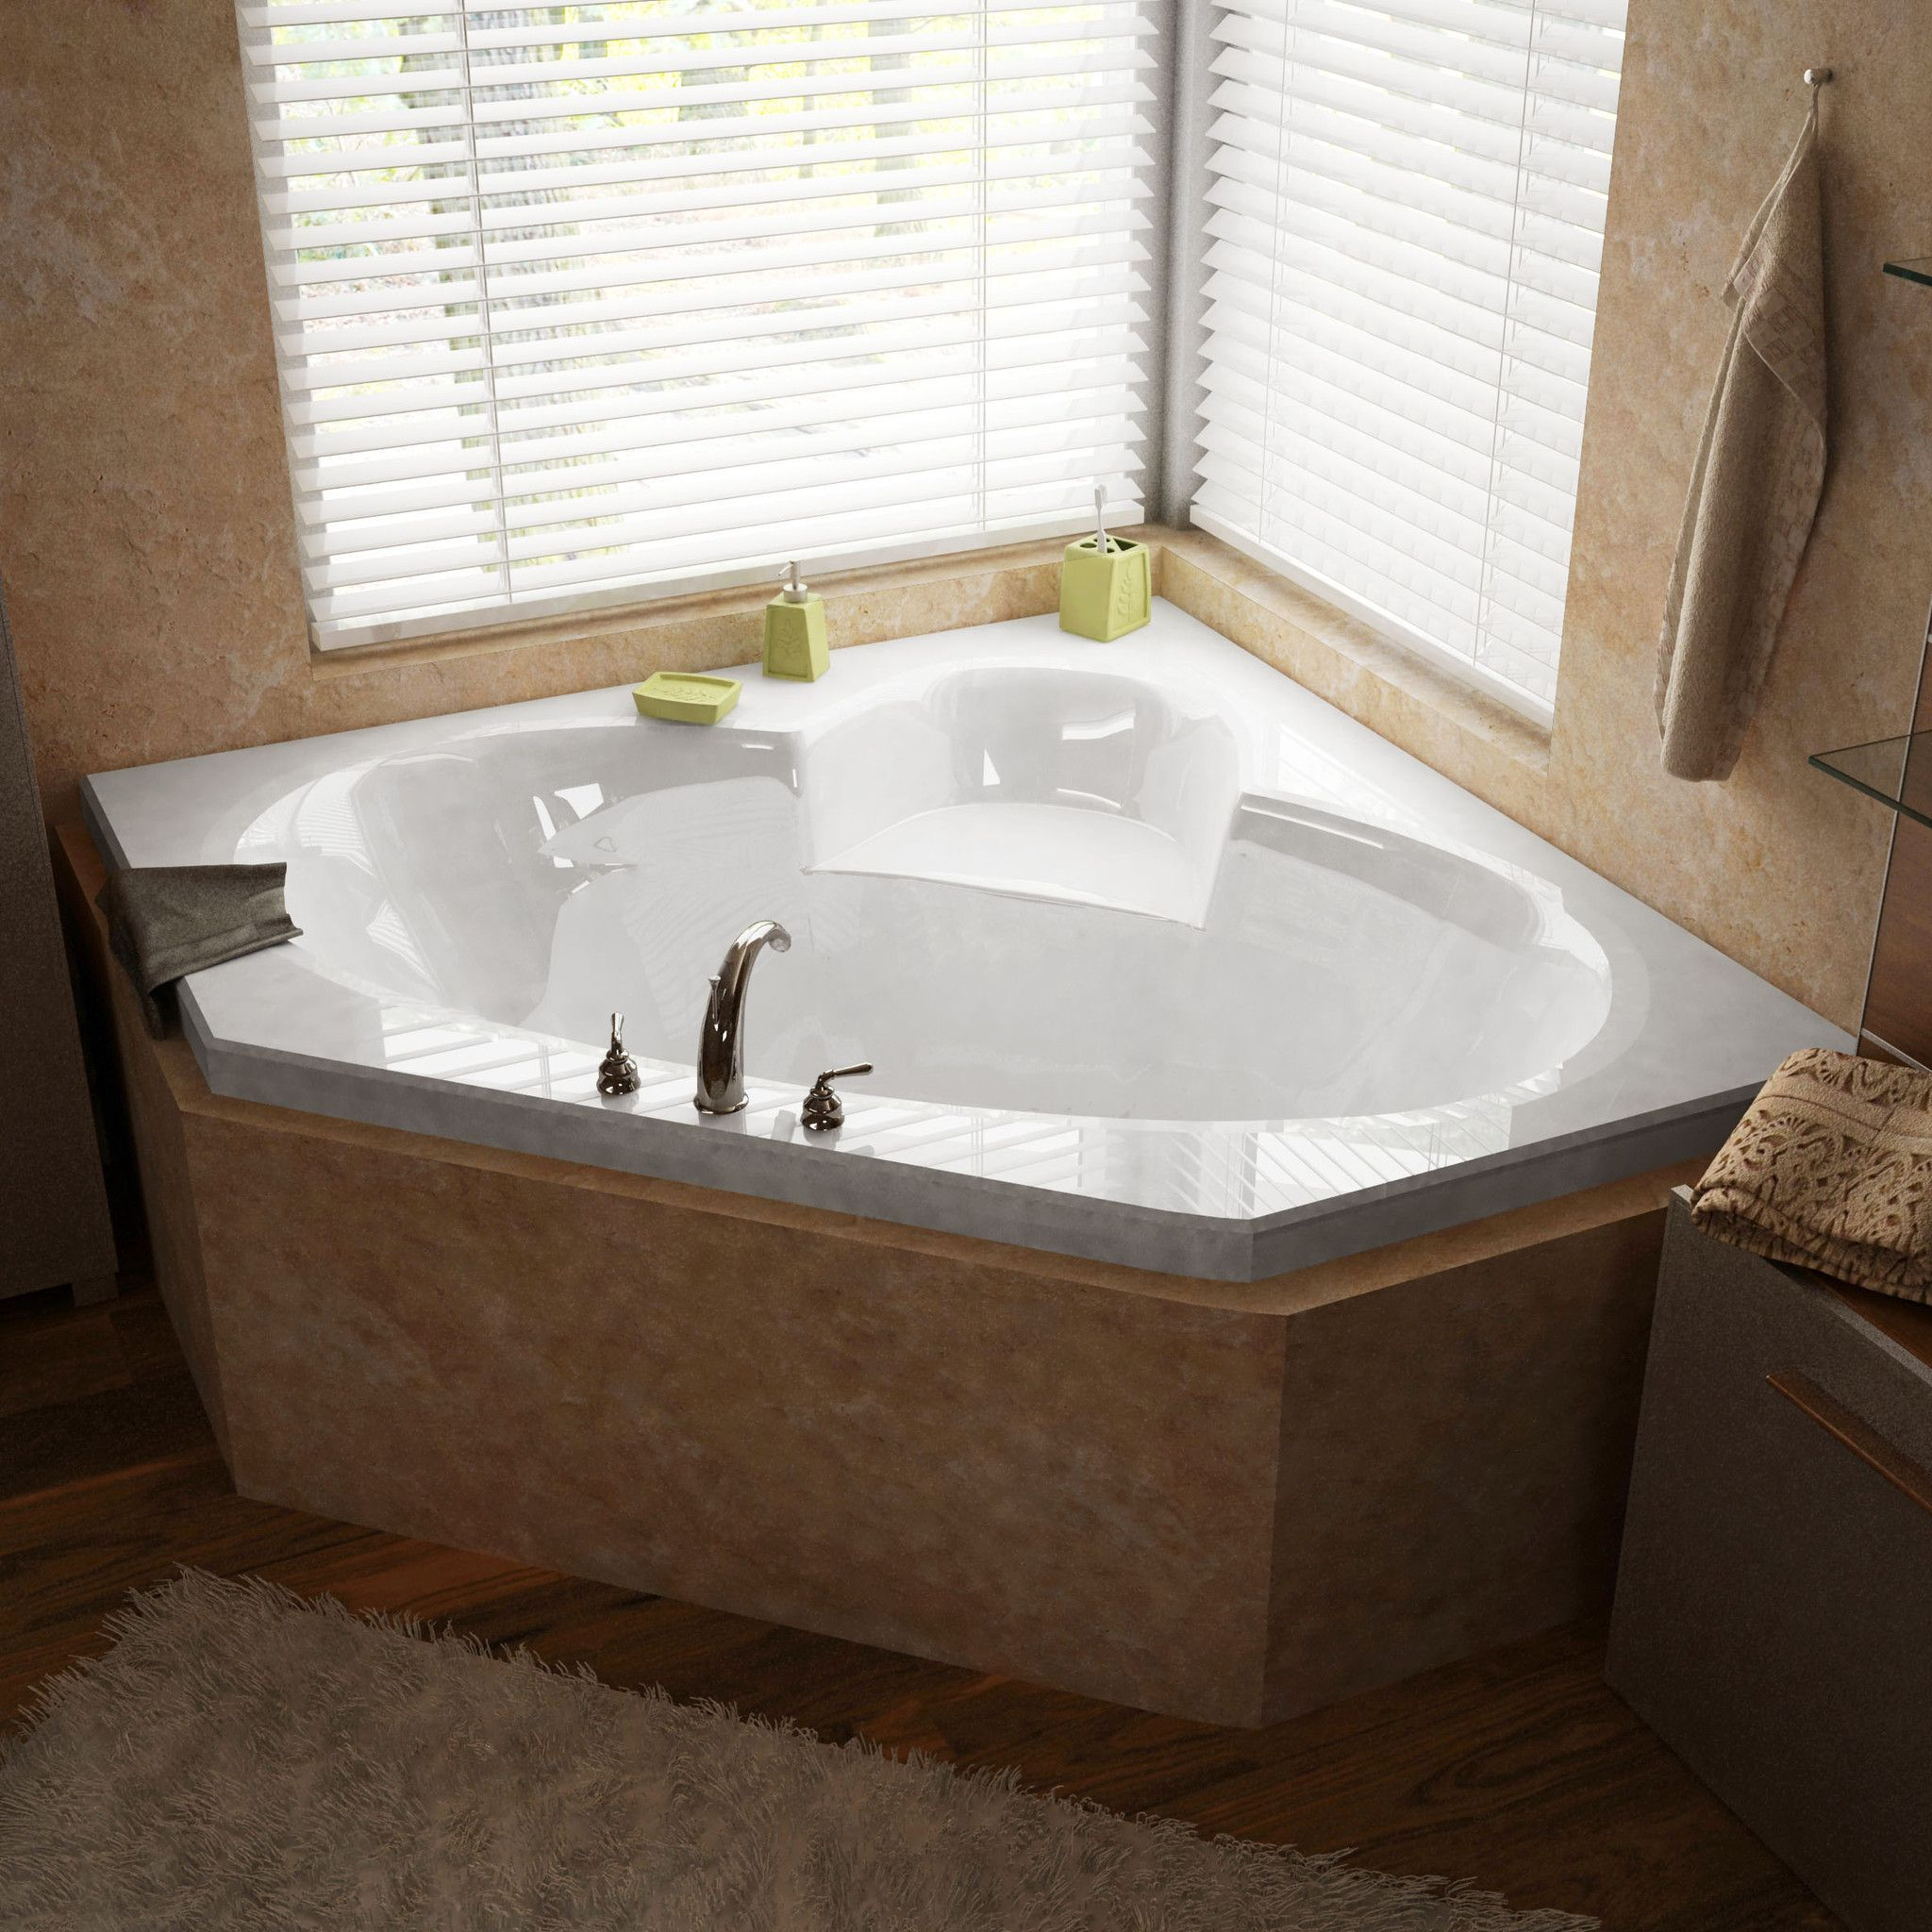 Venzi VZ6060SAR Ambra 60 x 60 Corner Air Jetted Bathtub with Center ...